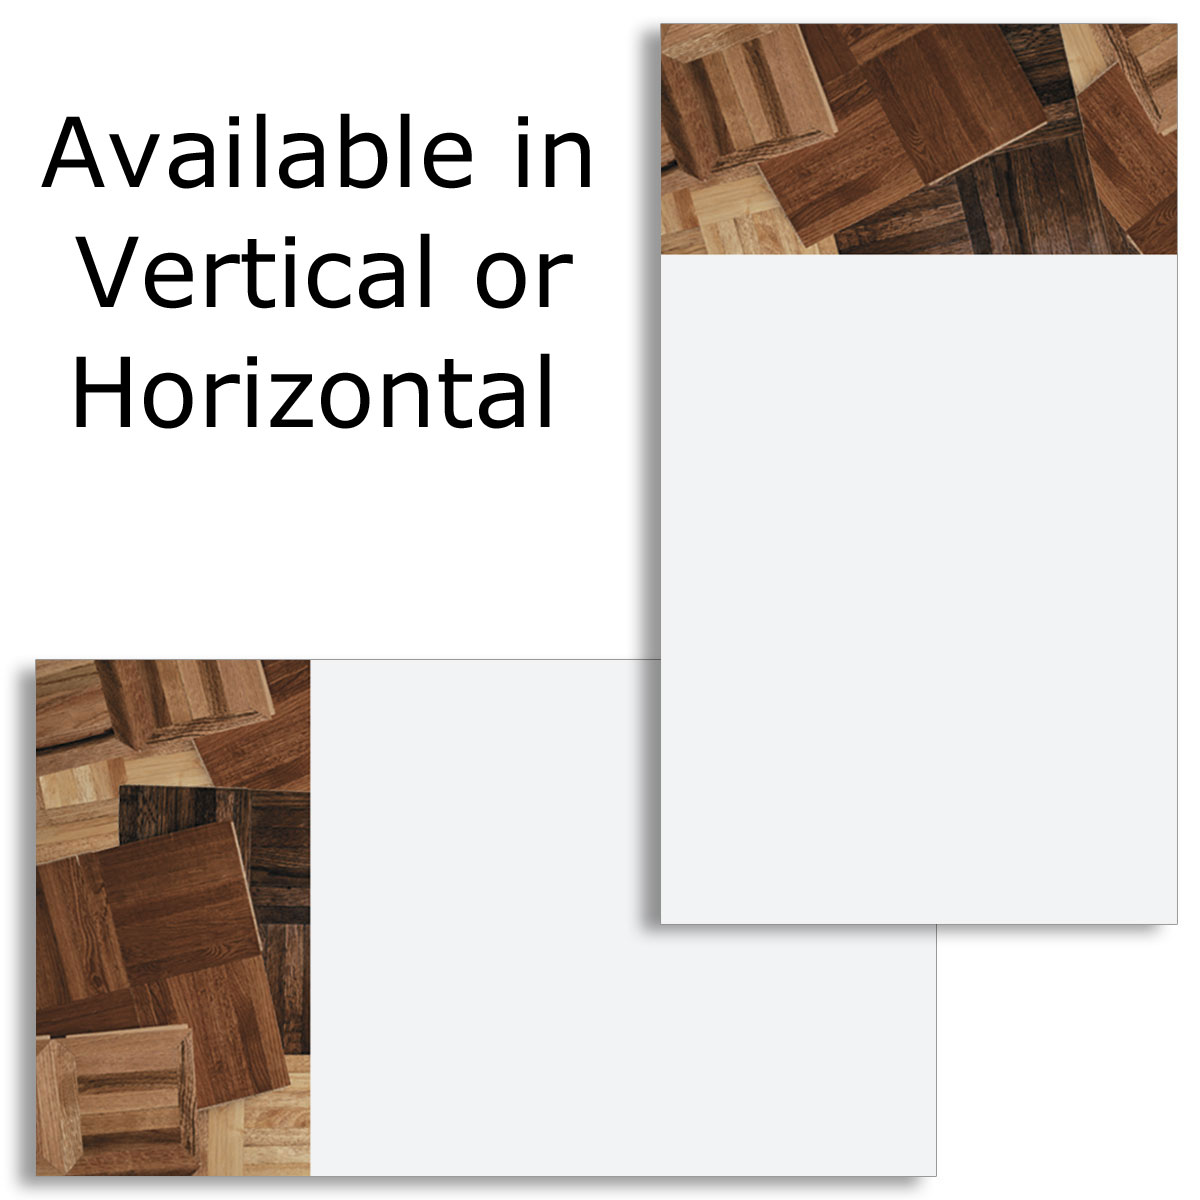 Wood Flooring Business Cards Paperdirects